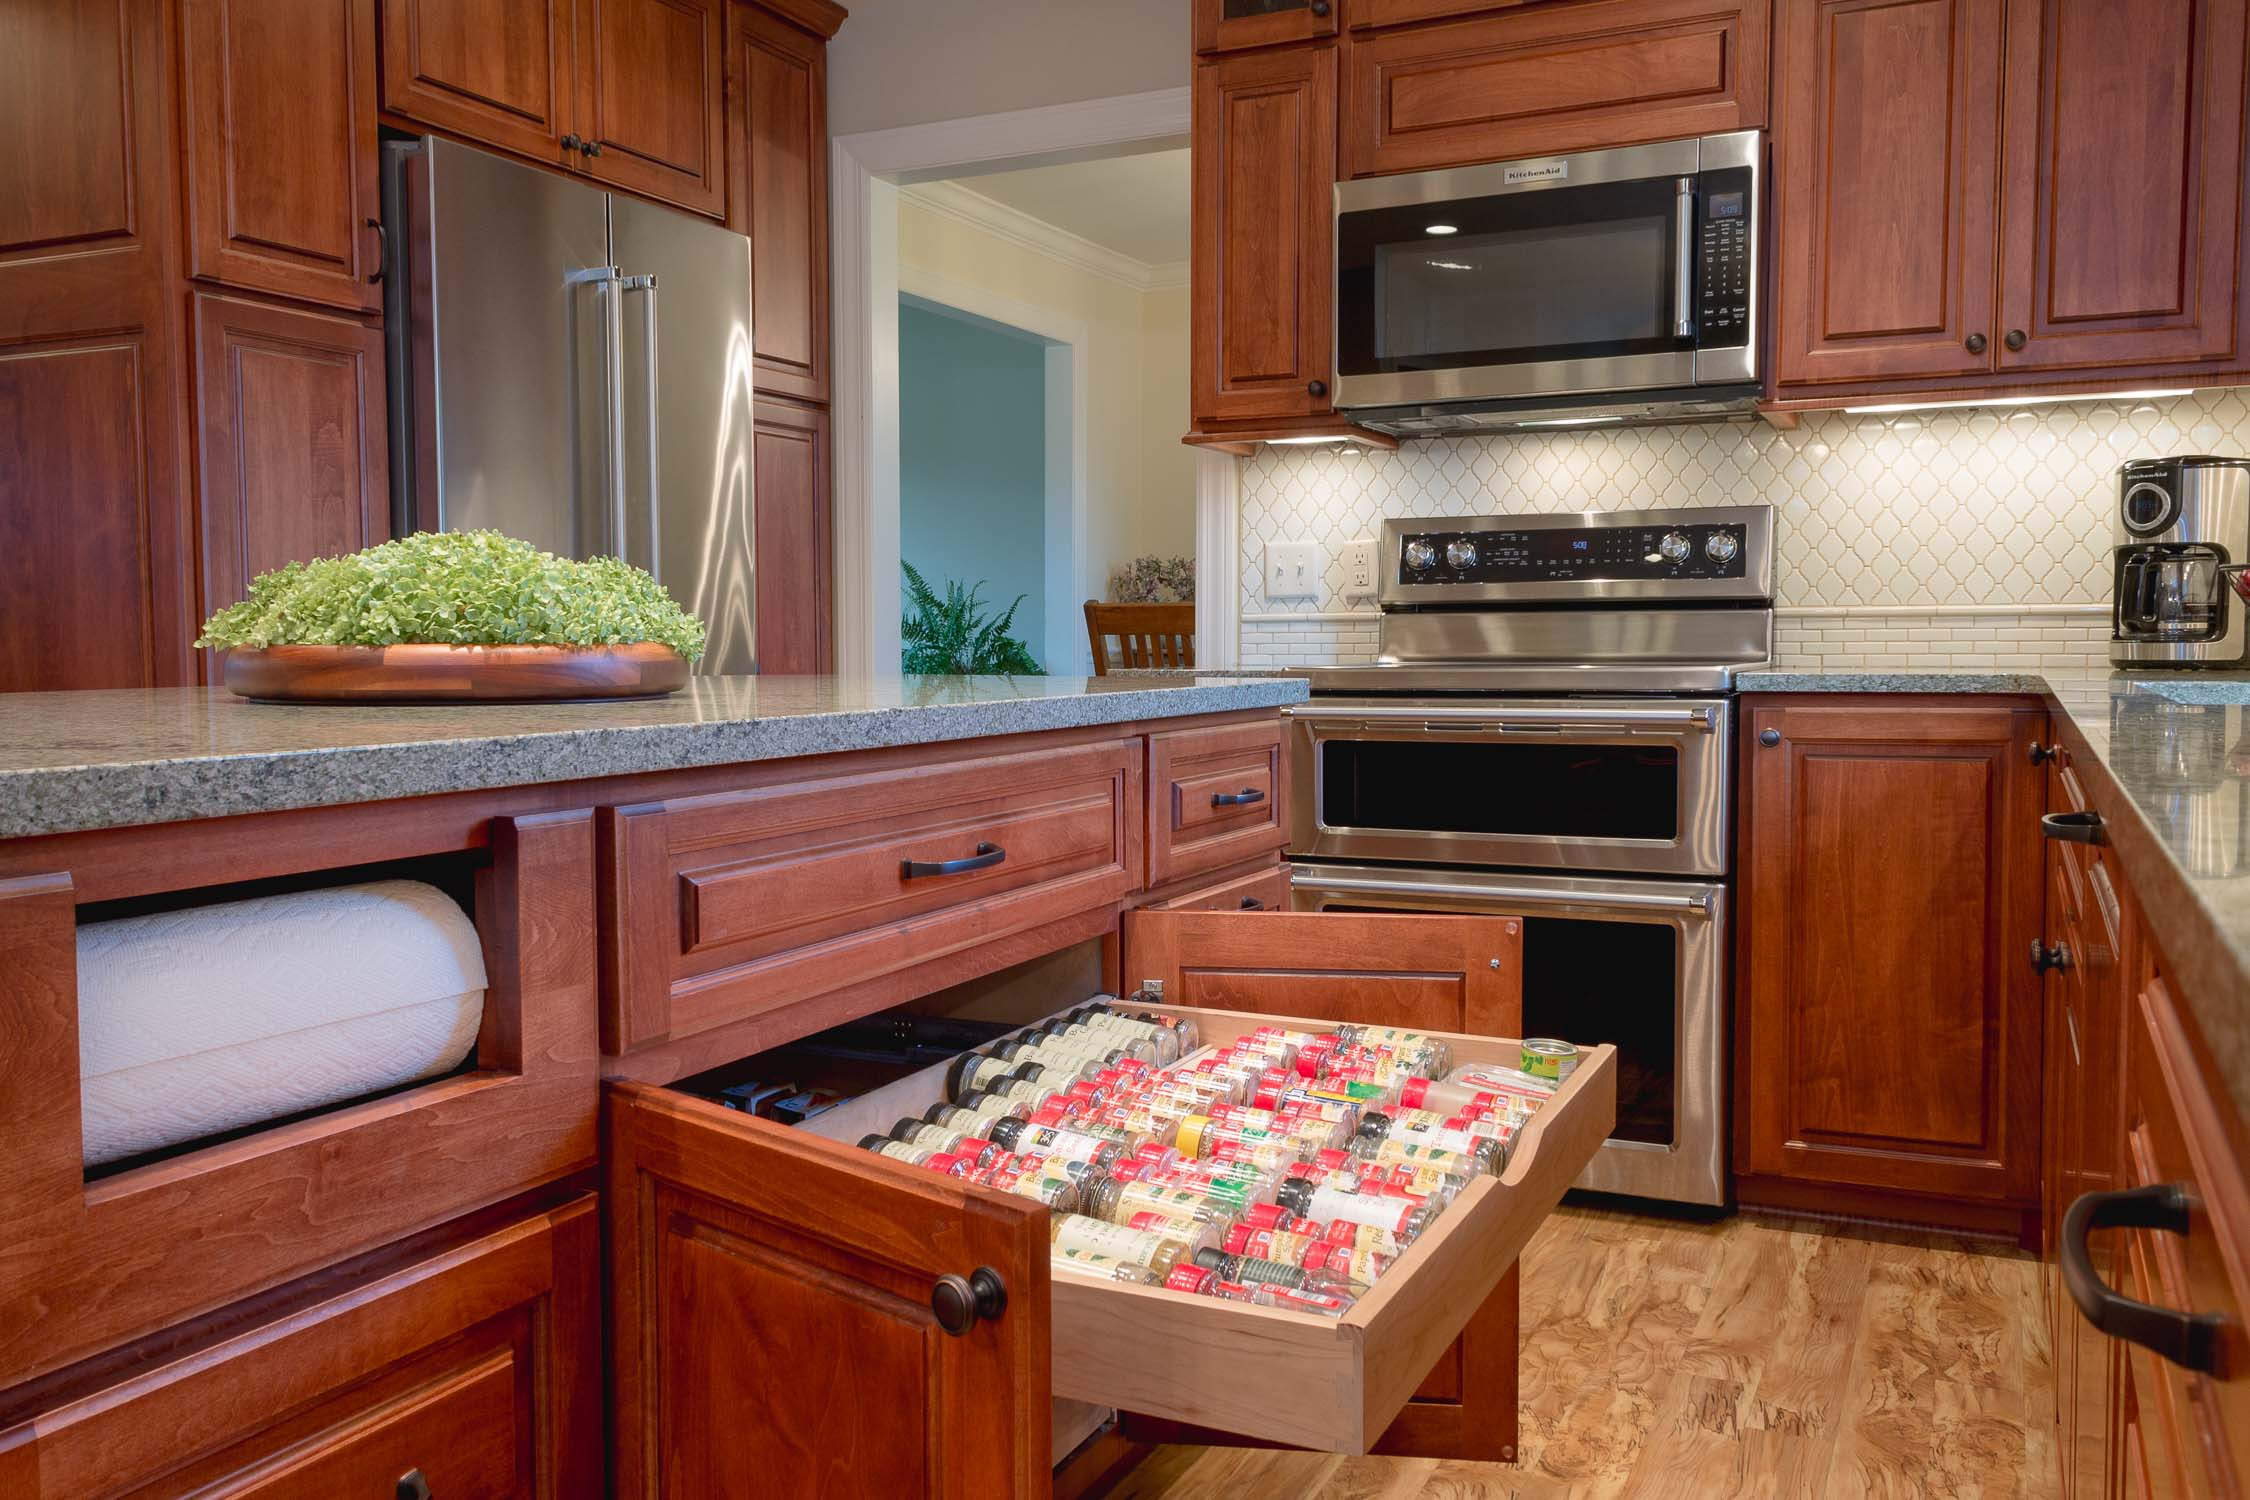 Innovative Kitchen Design Ideas - This custom kitchen was designed with a built-in paper towel dispenser and space drawer storage.